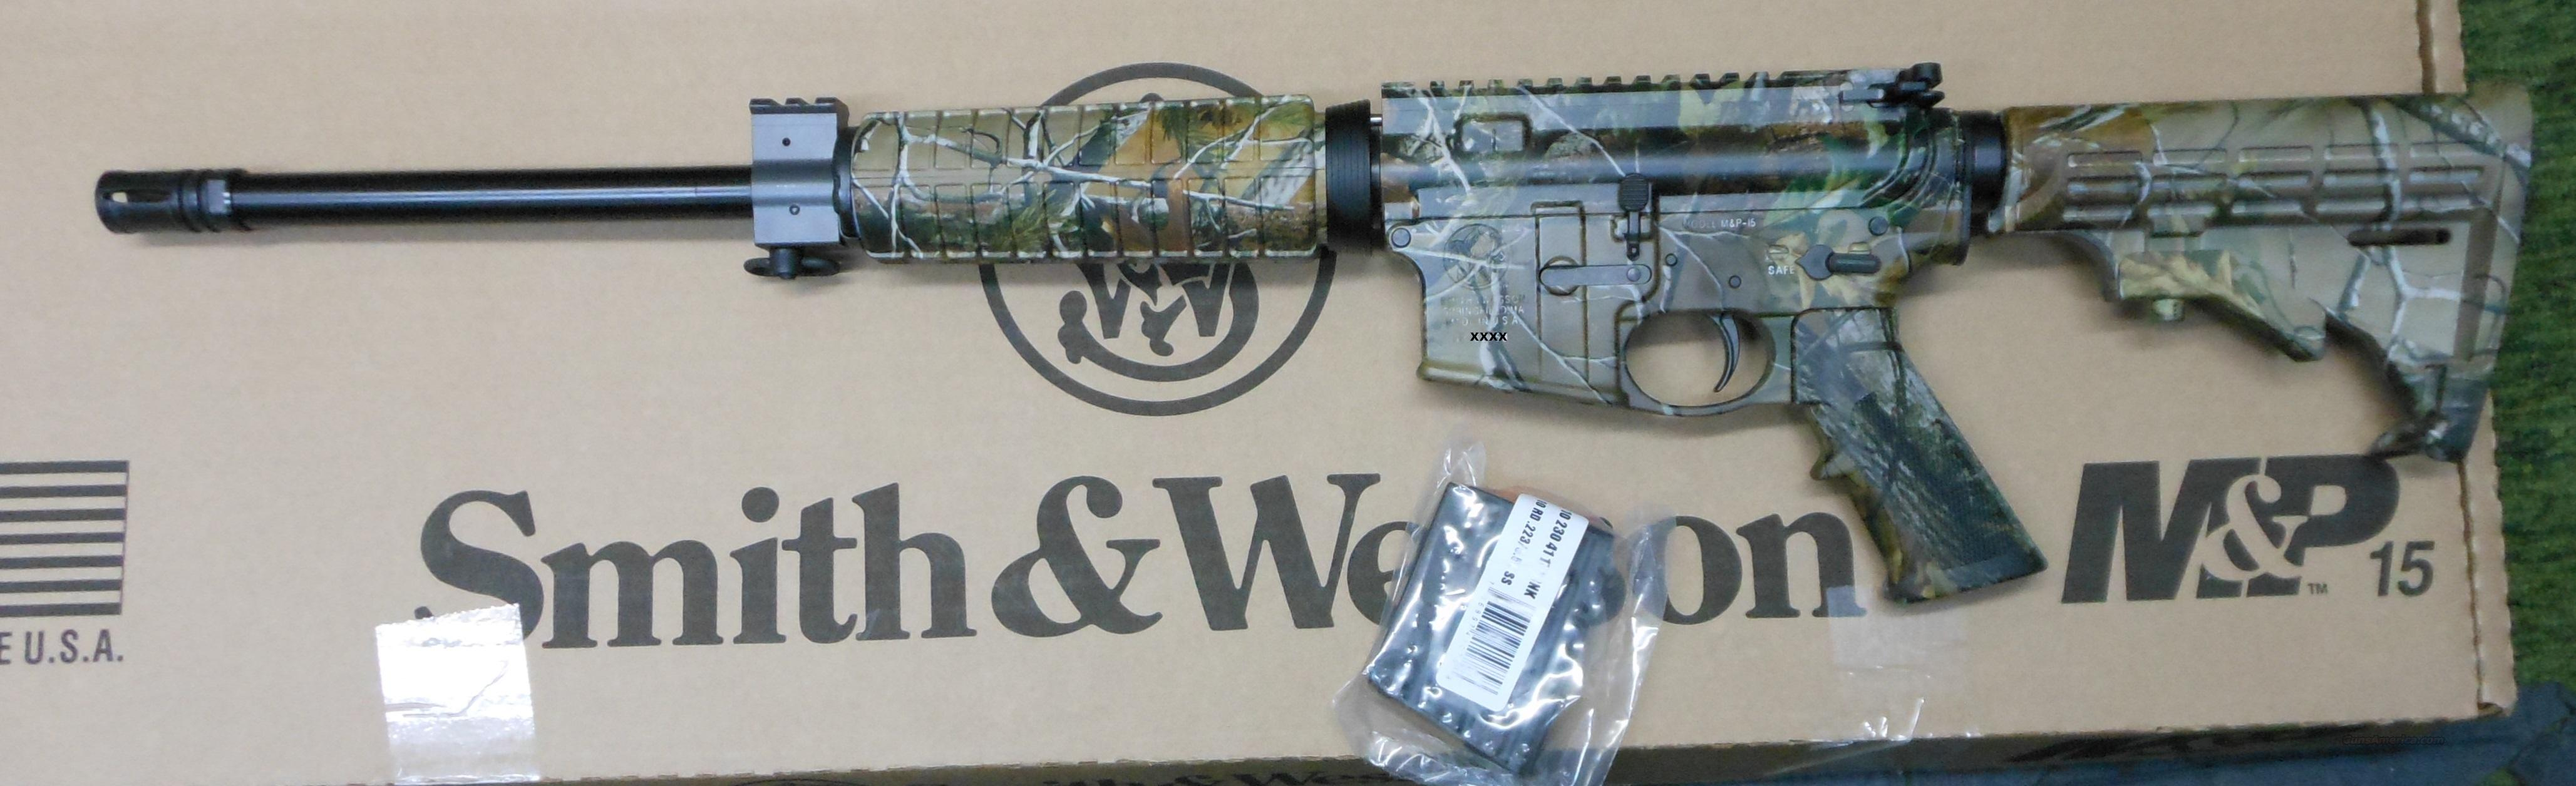 SMITH & WESSON M&P 15 300 WHISPER (300 AAC BLACKOUT) AR RIFLE (811300)  Guns > Rifles > Smith & Wesson Rifles > M&P